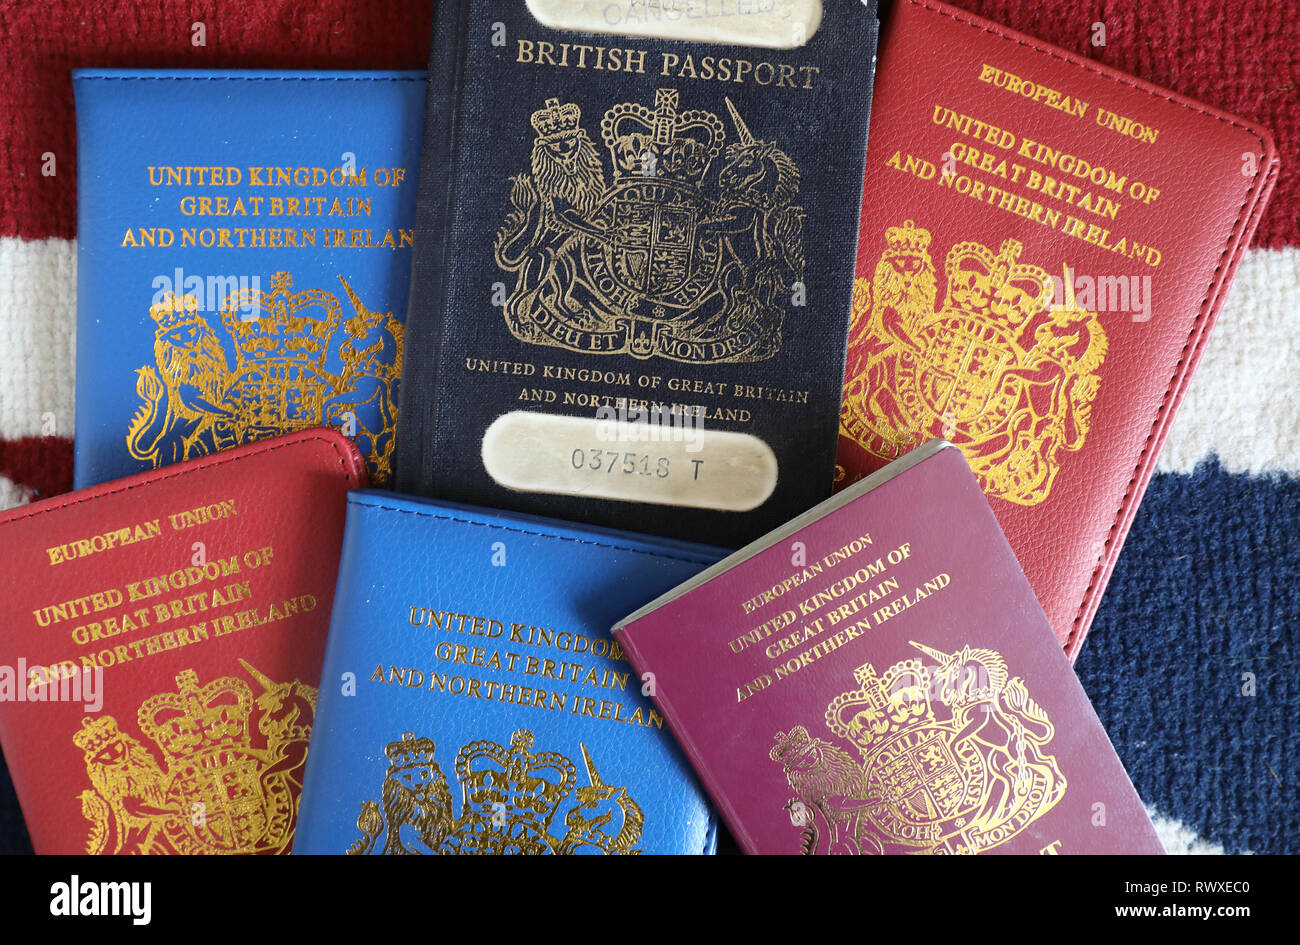 Brexit - old and new style British passports, depending on the EU outcome. - Stock Image